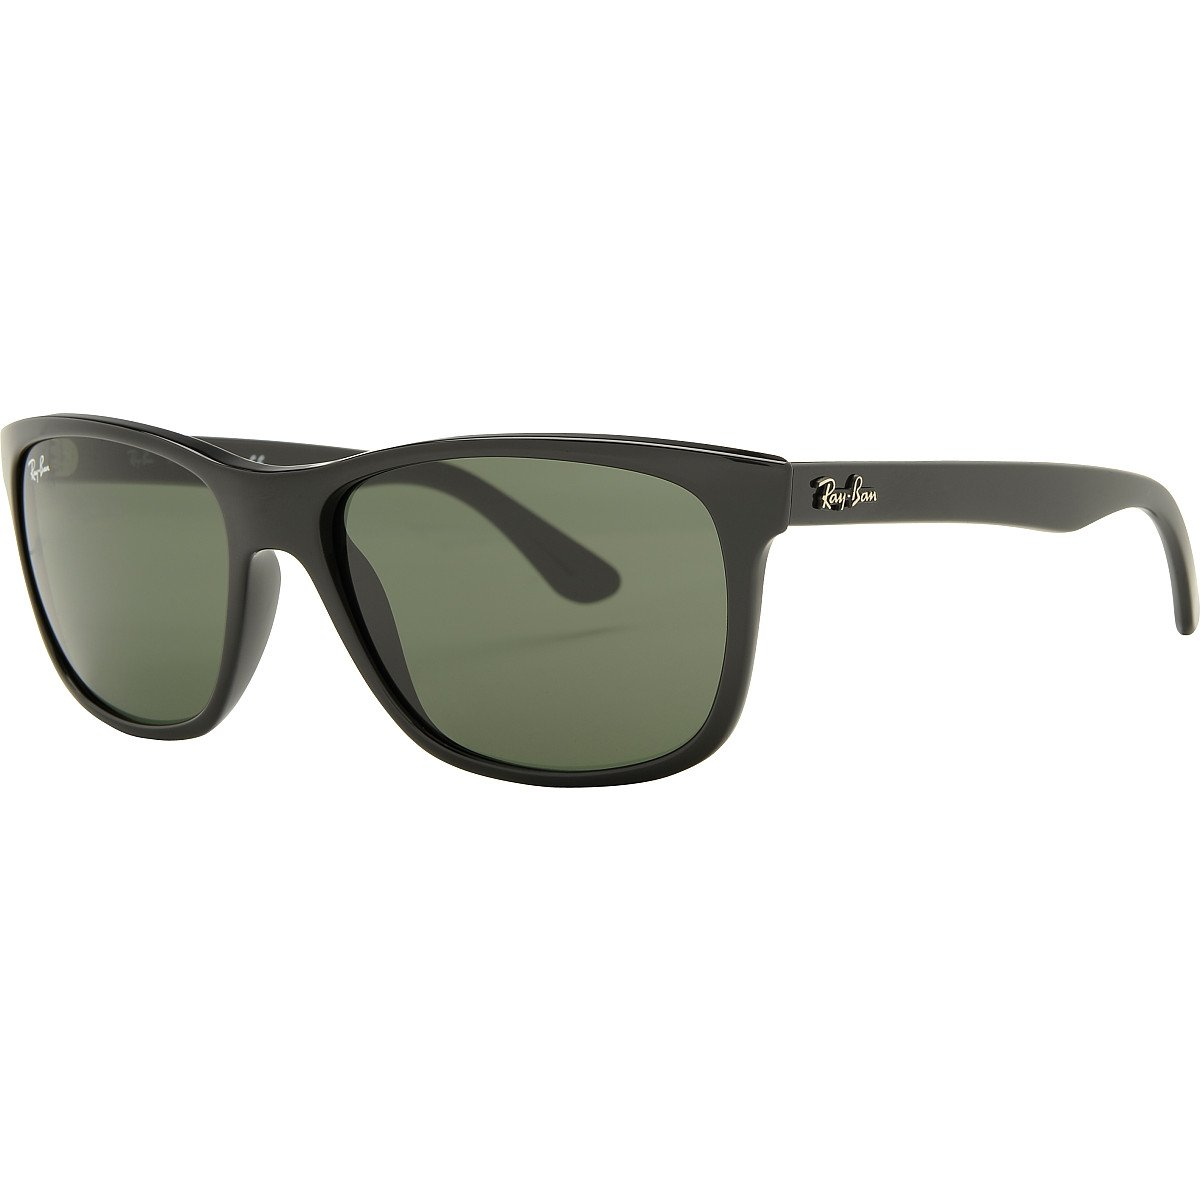 ebdf72b4ef Amazon.com  Ray-Ban 4181 601 Black 4181 Wayfarer Sunglasses Lens Category 3   Shoes